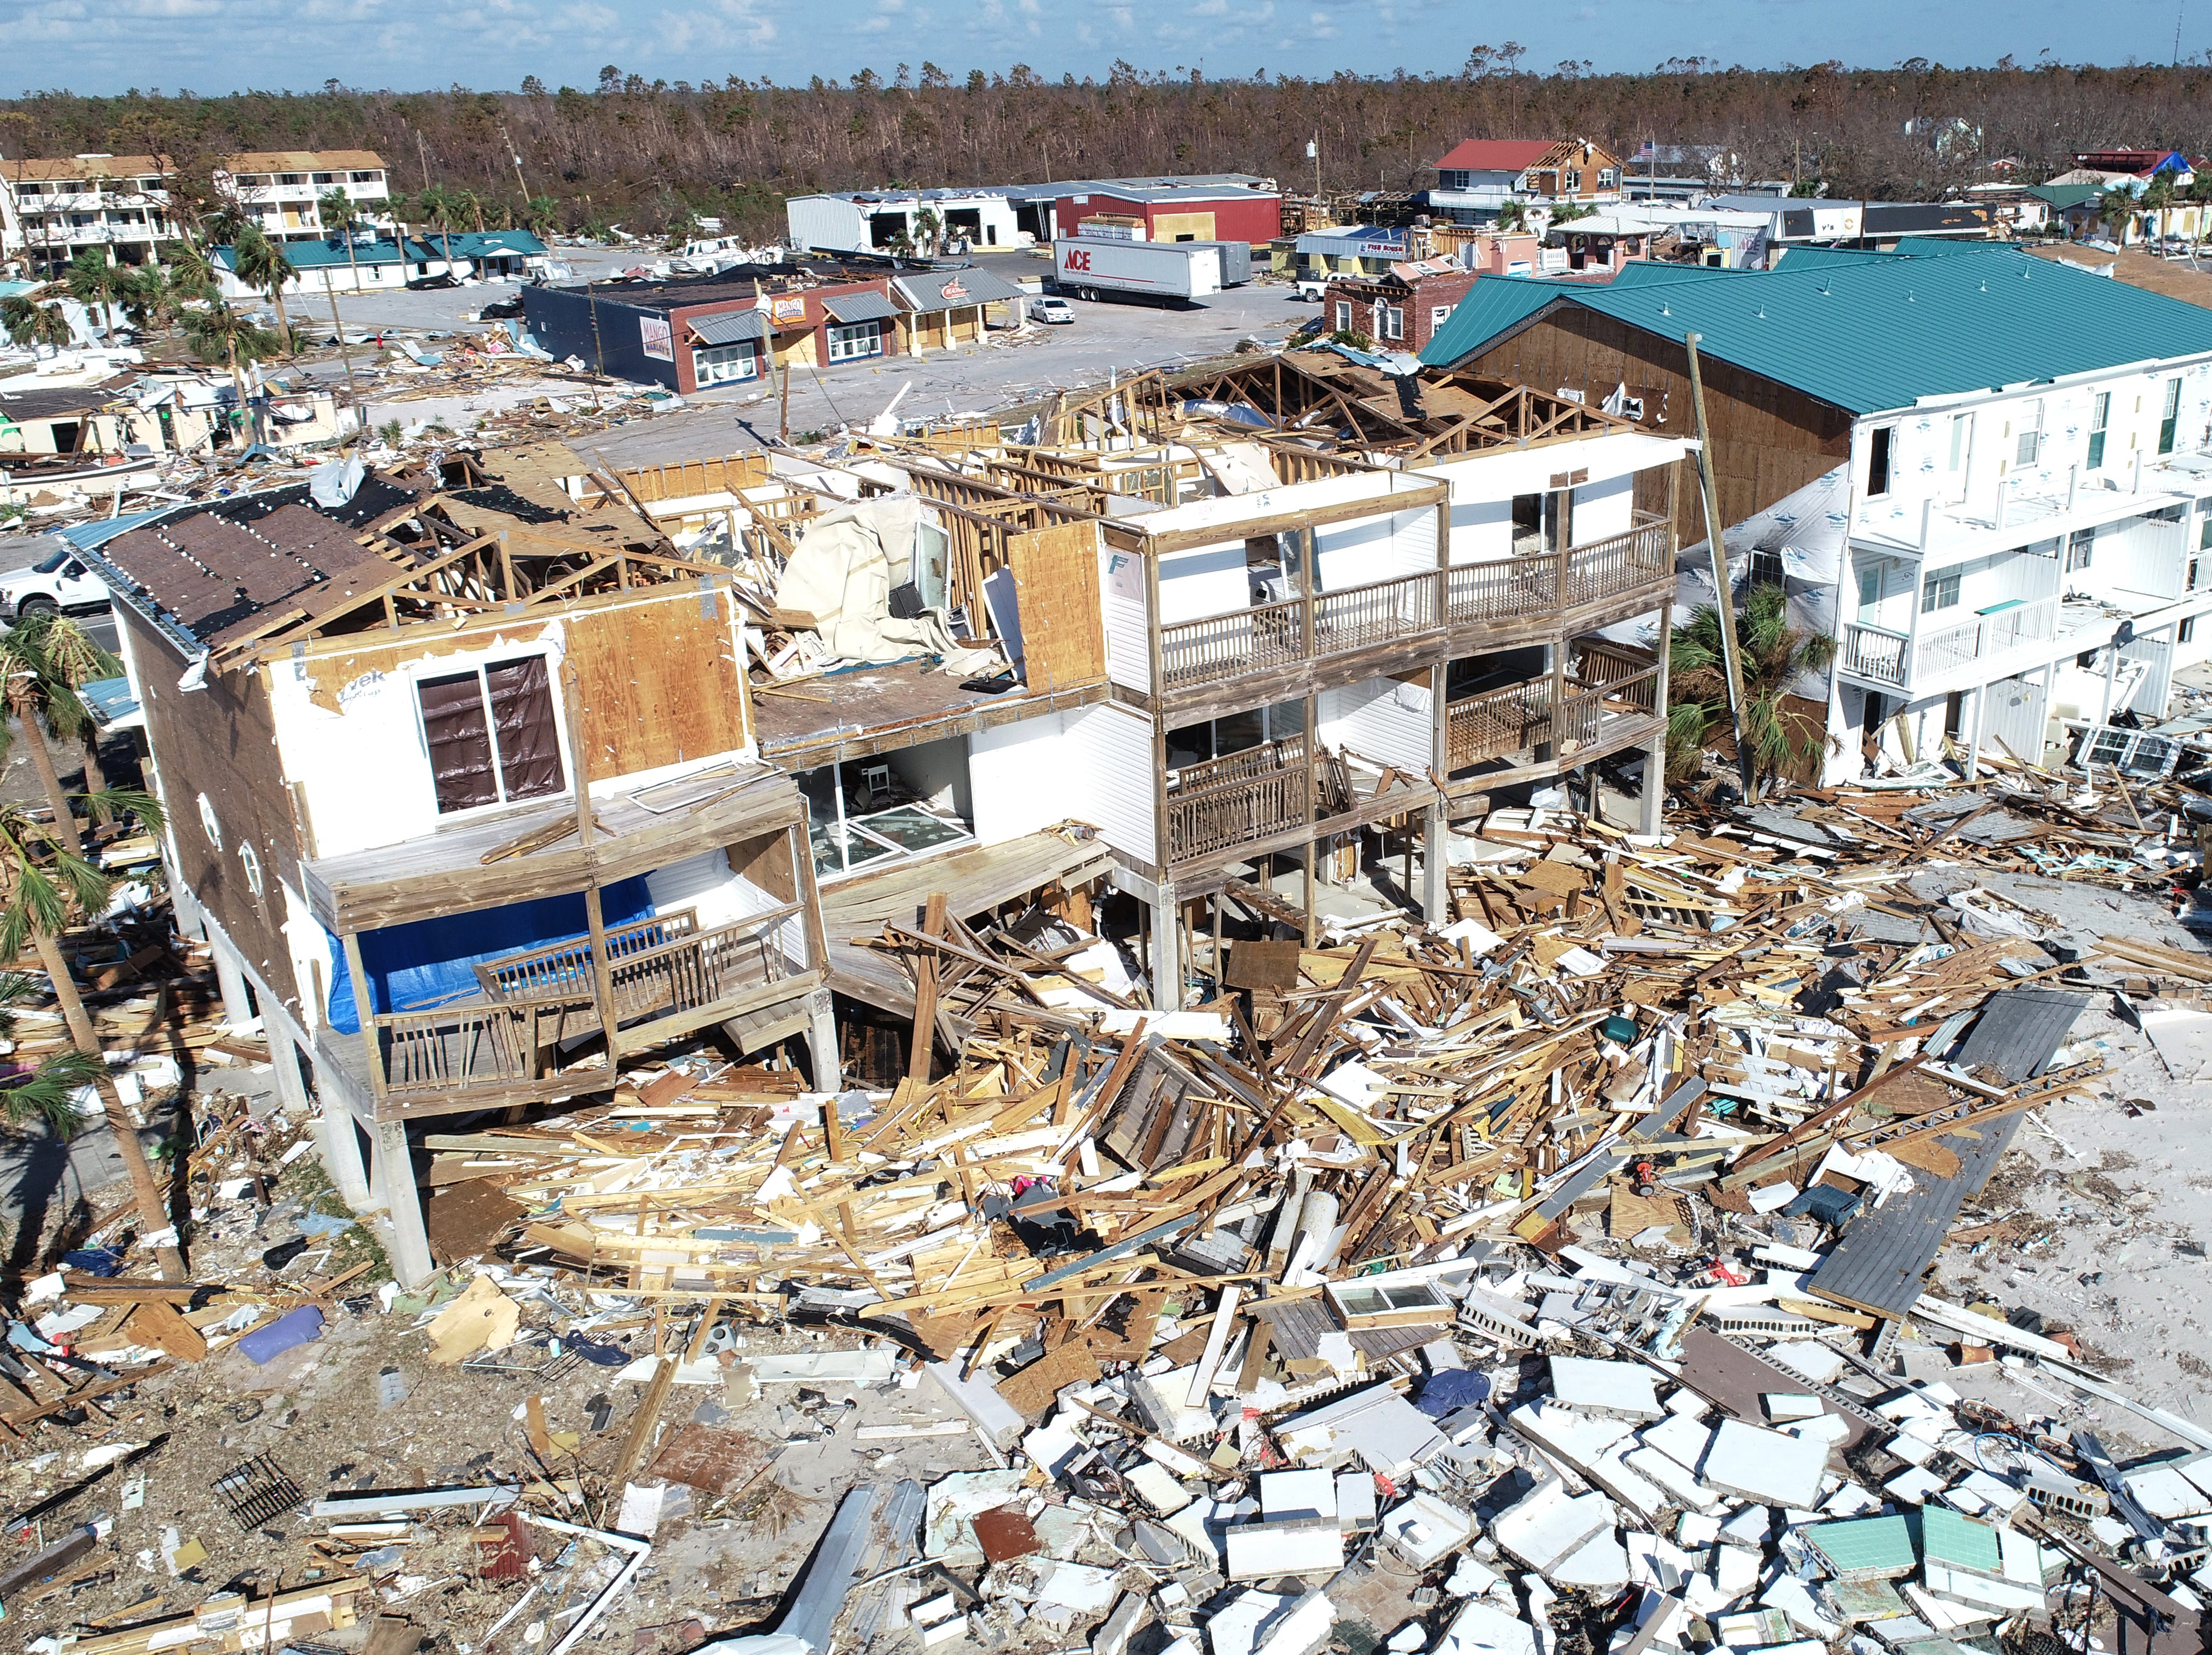 Homes in Mexico Beach, Florida, shown Tuesday, Oct. 16, 2018, were completely destroyed when Hurricane Michael made landfall there a week earlier.